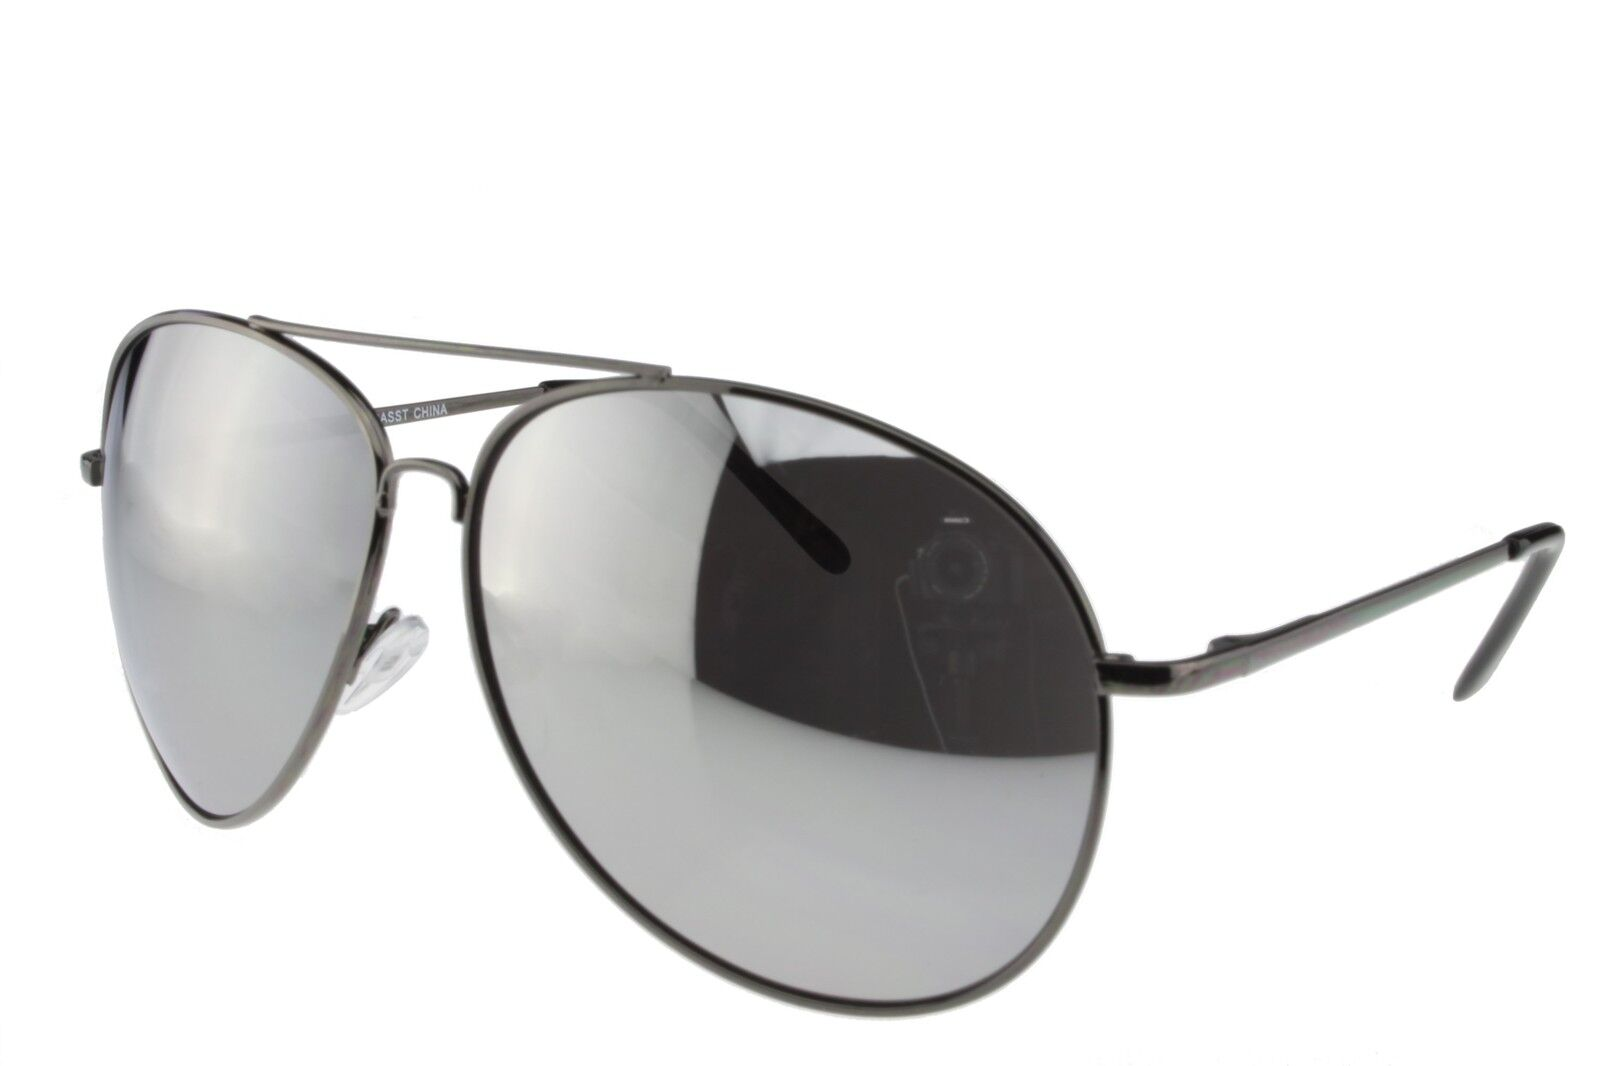 69d8f56d71 Details about Extra Large Sunglasses Aviator Women Men Oversized Big Gun  Frame Mirror Lens